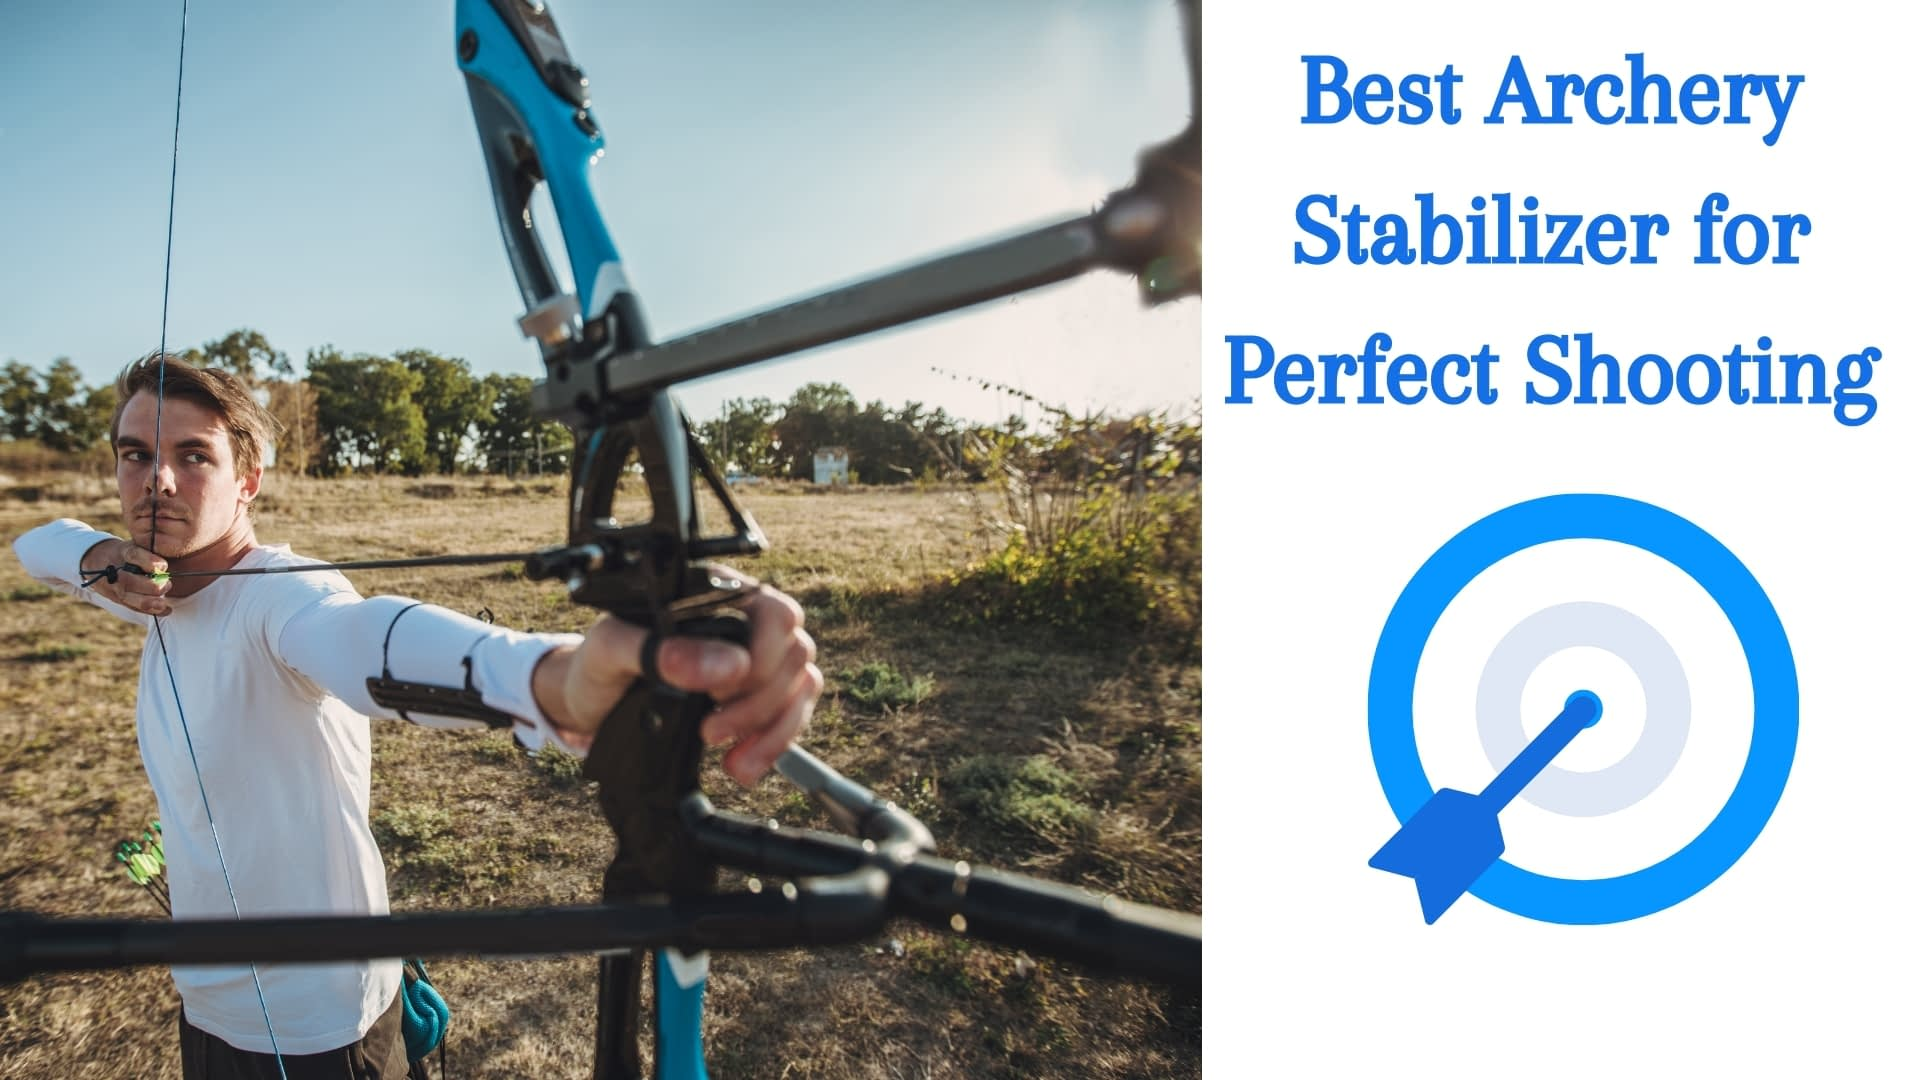 Best Archery Stabilizer for Perfect Shooting